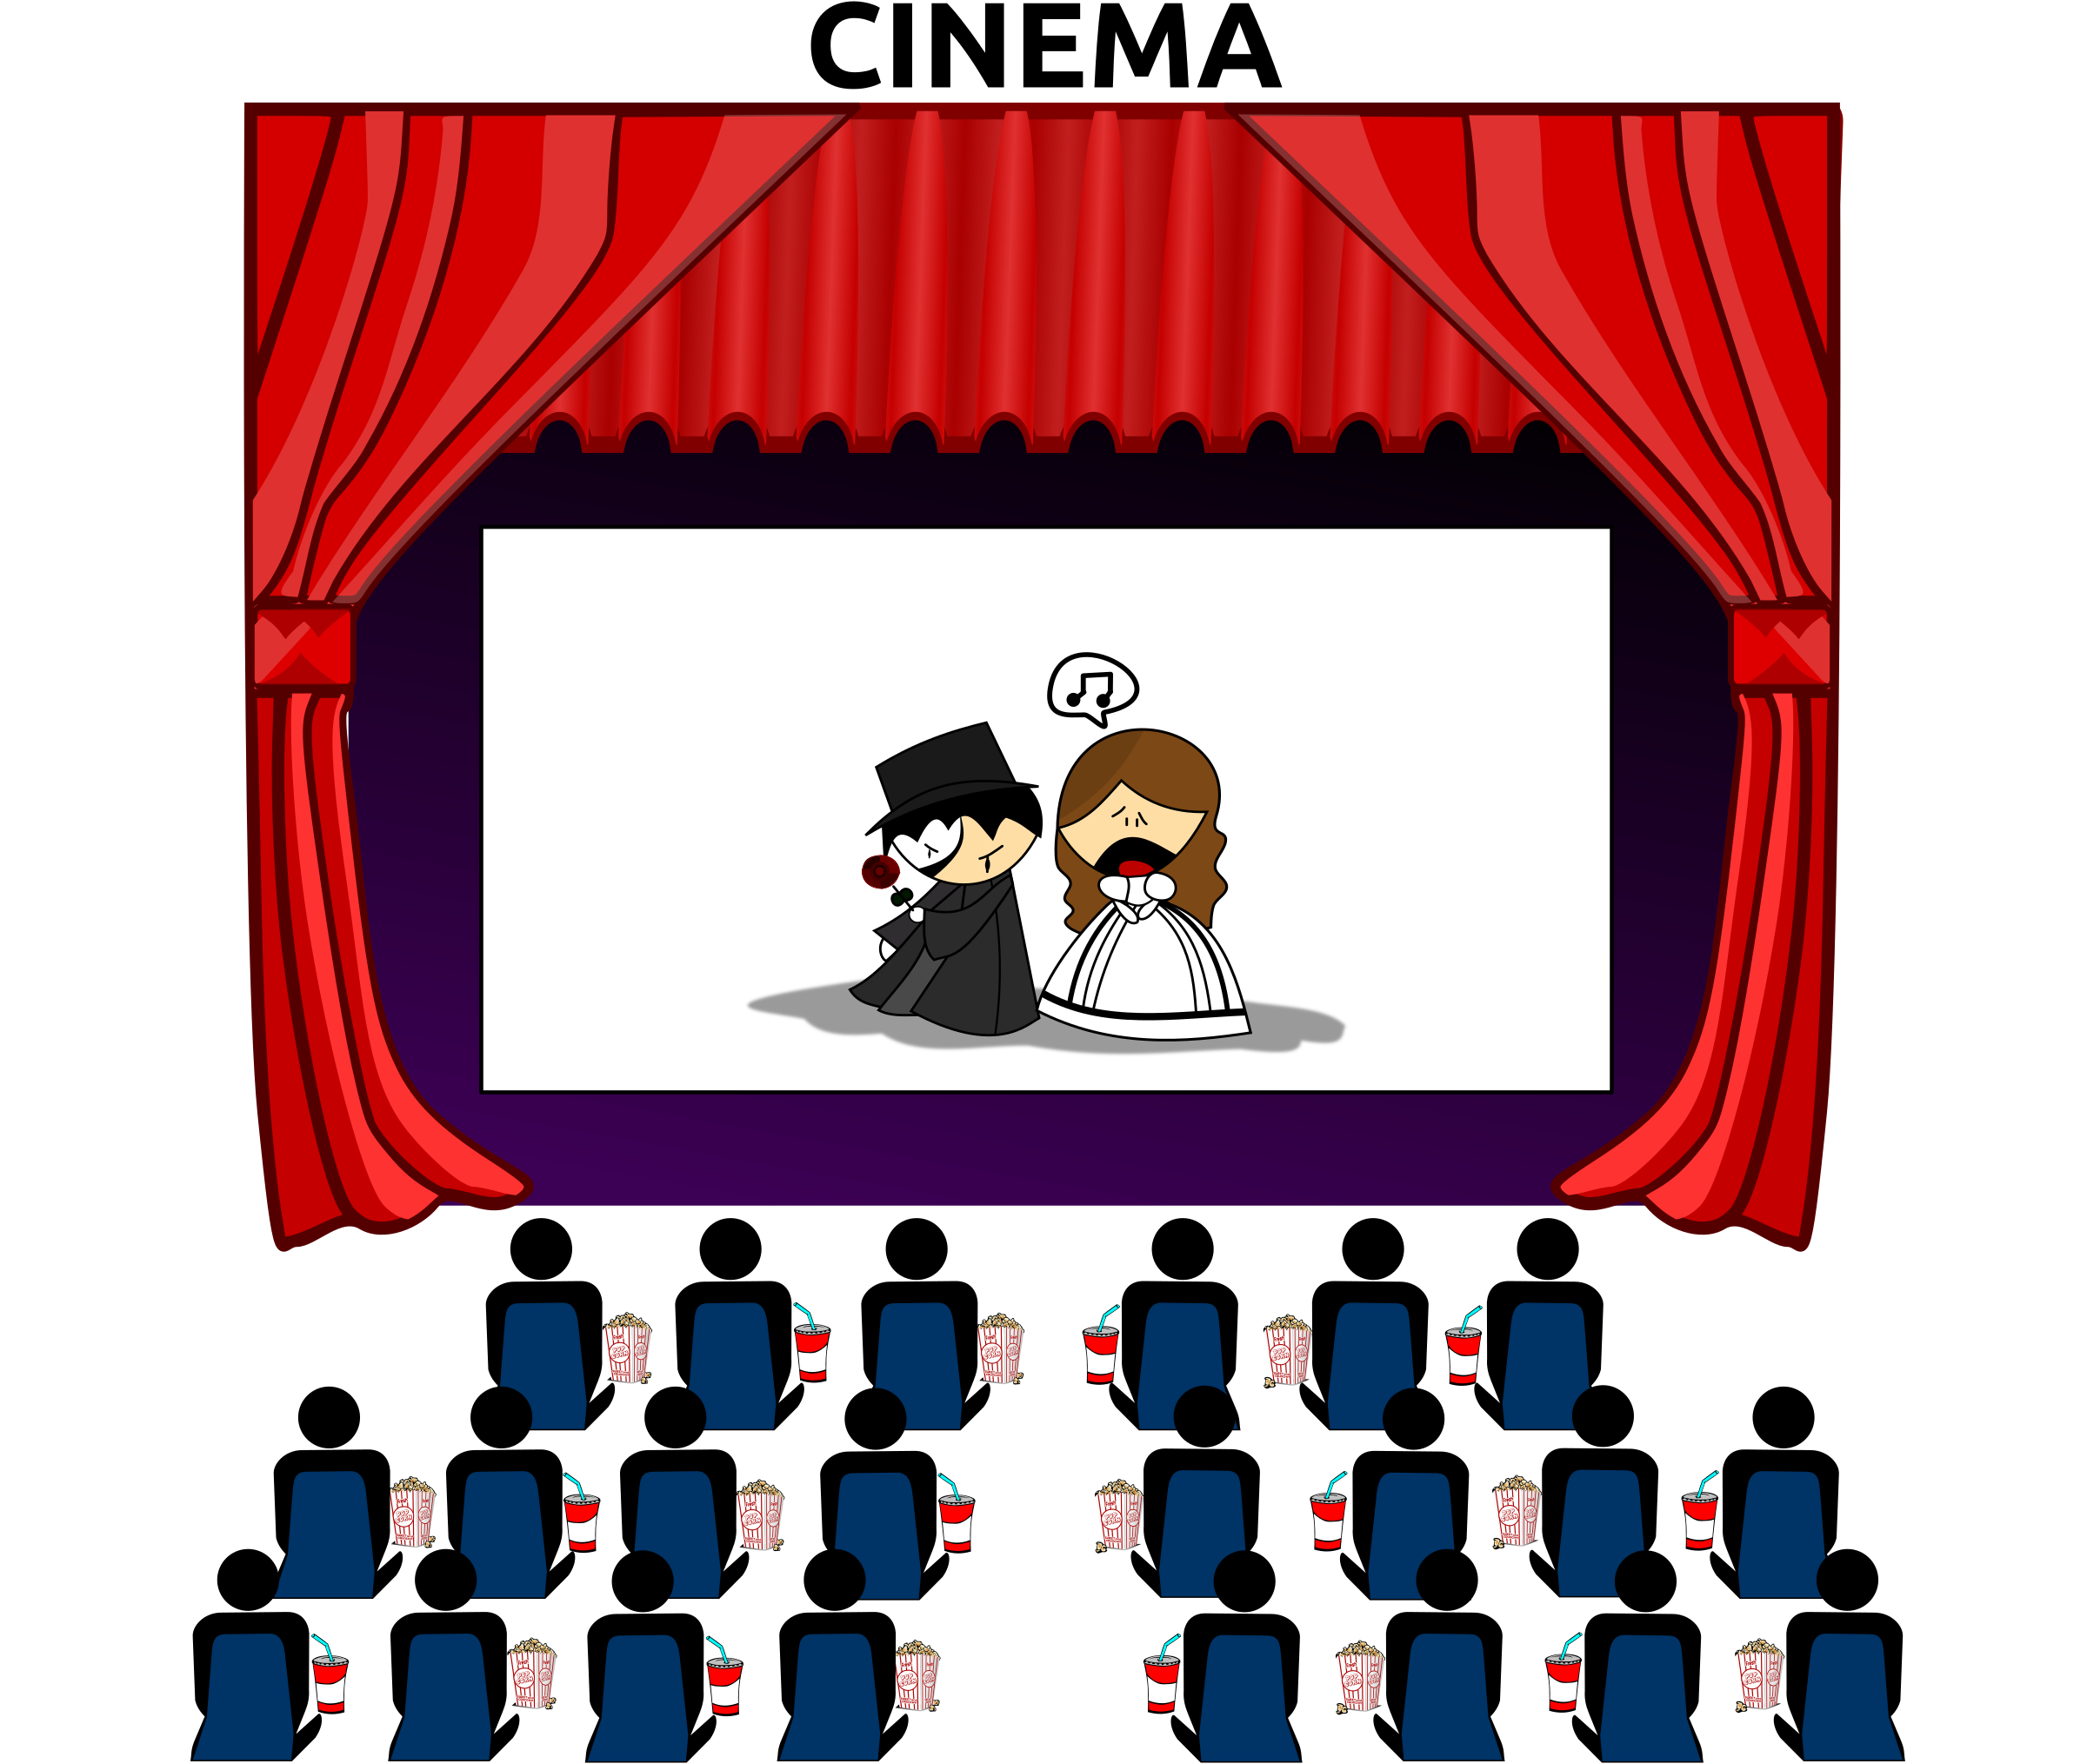 Cinema by Merlin2525